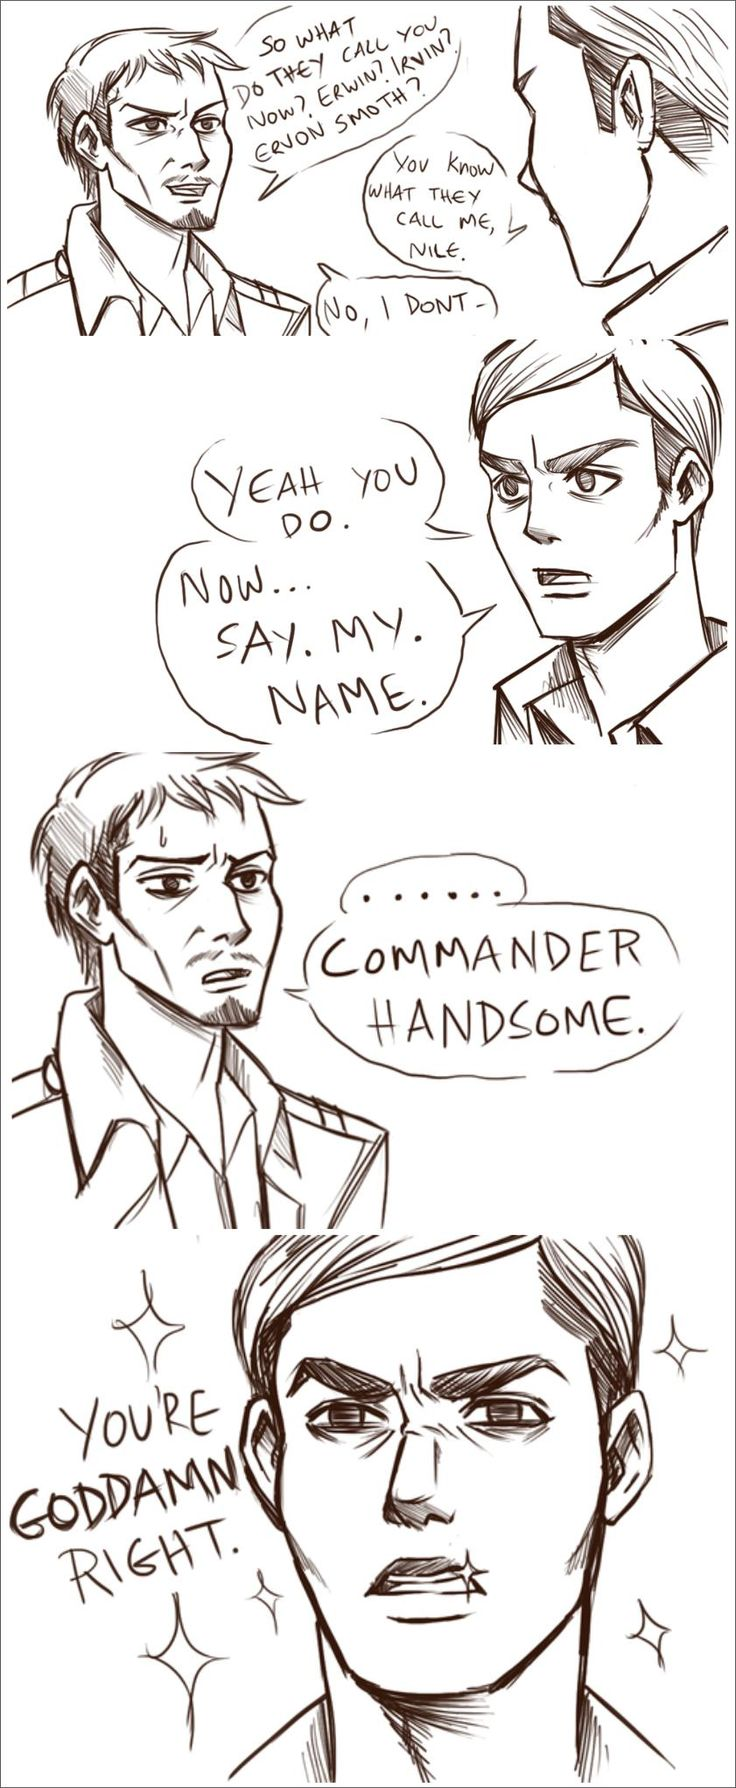 ((Now here we have Commander Handsome/Erwin Smith/Irvin Smith/whatever his name is in his glory.))